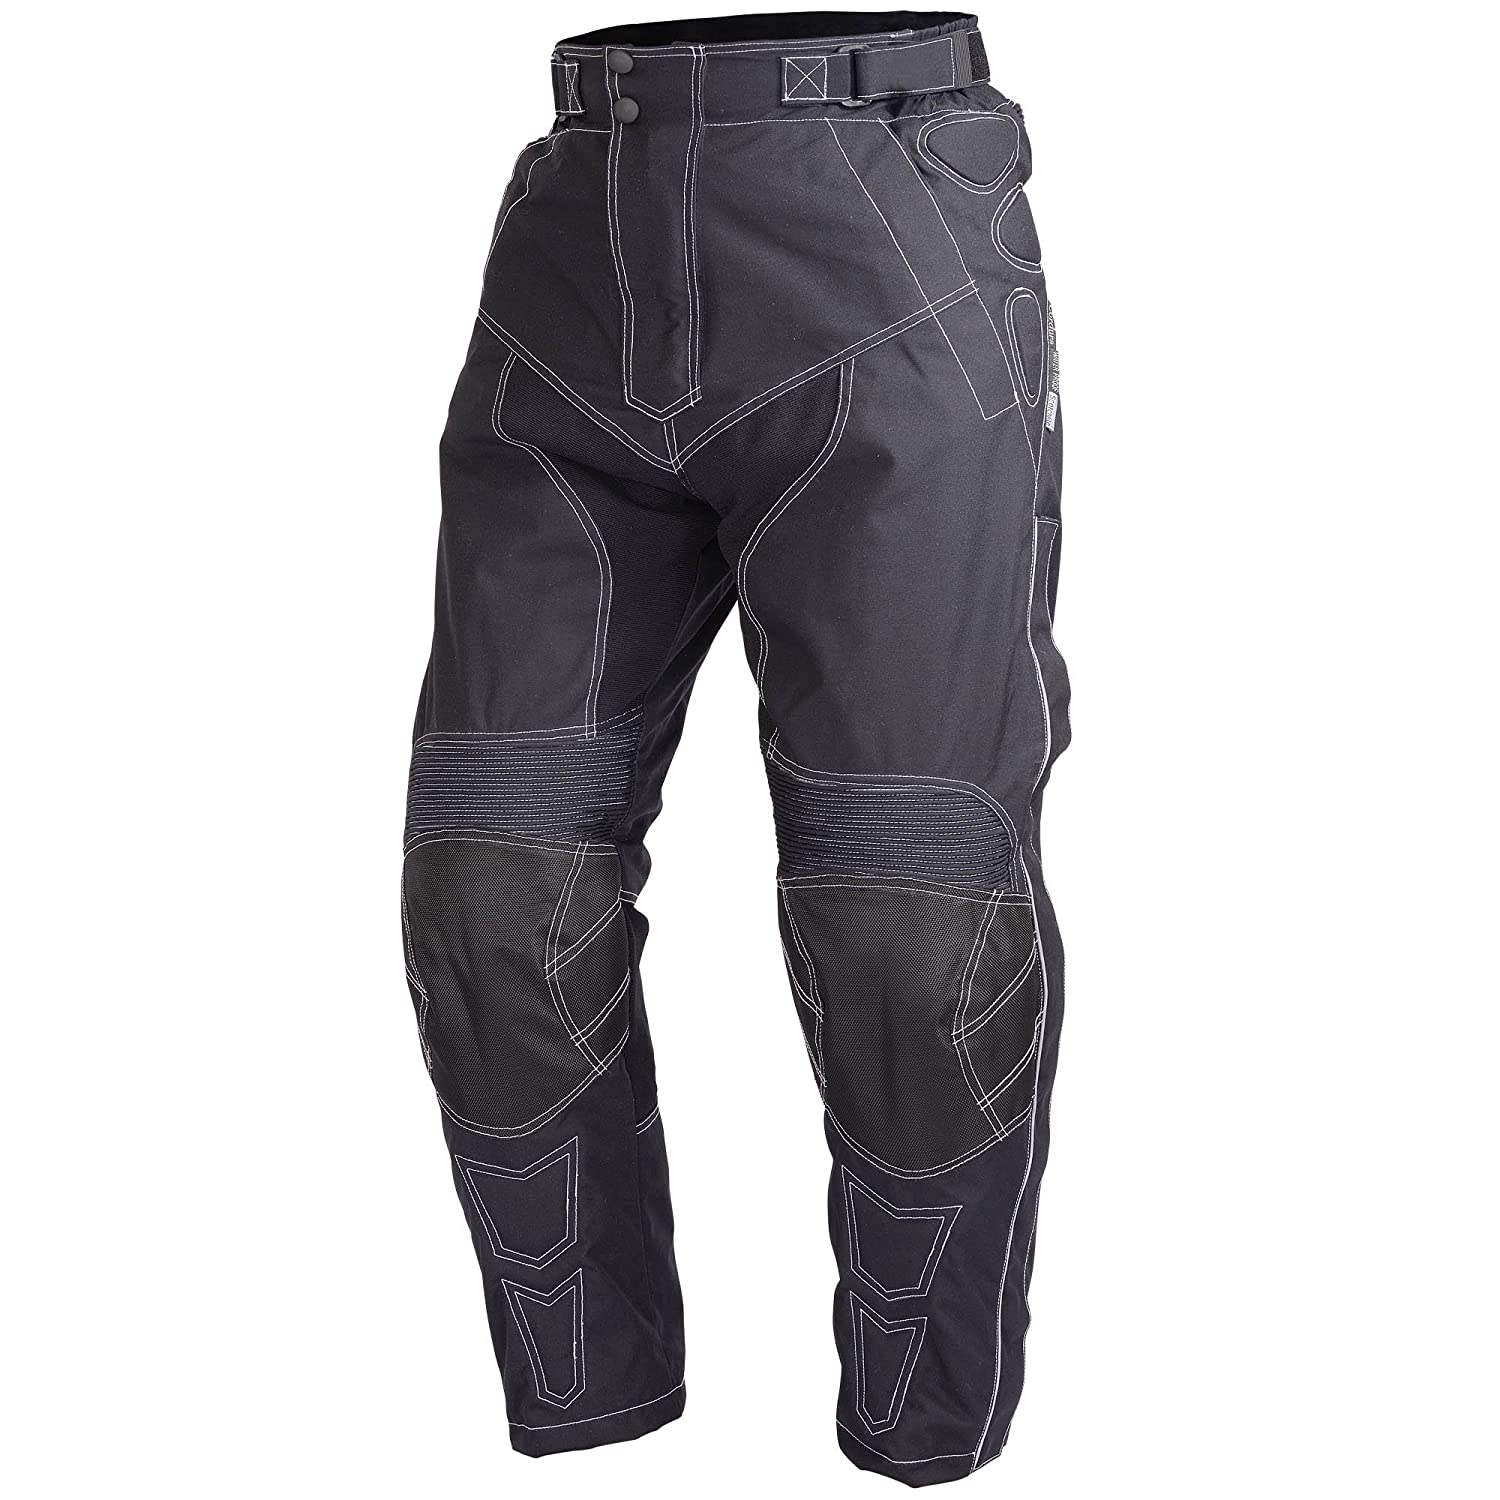 Motorcycle Cordura Riding Pants Black with Removable CE Armor PT5 (XL) Xtreemgear